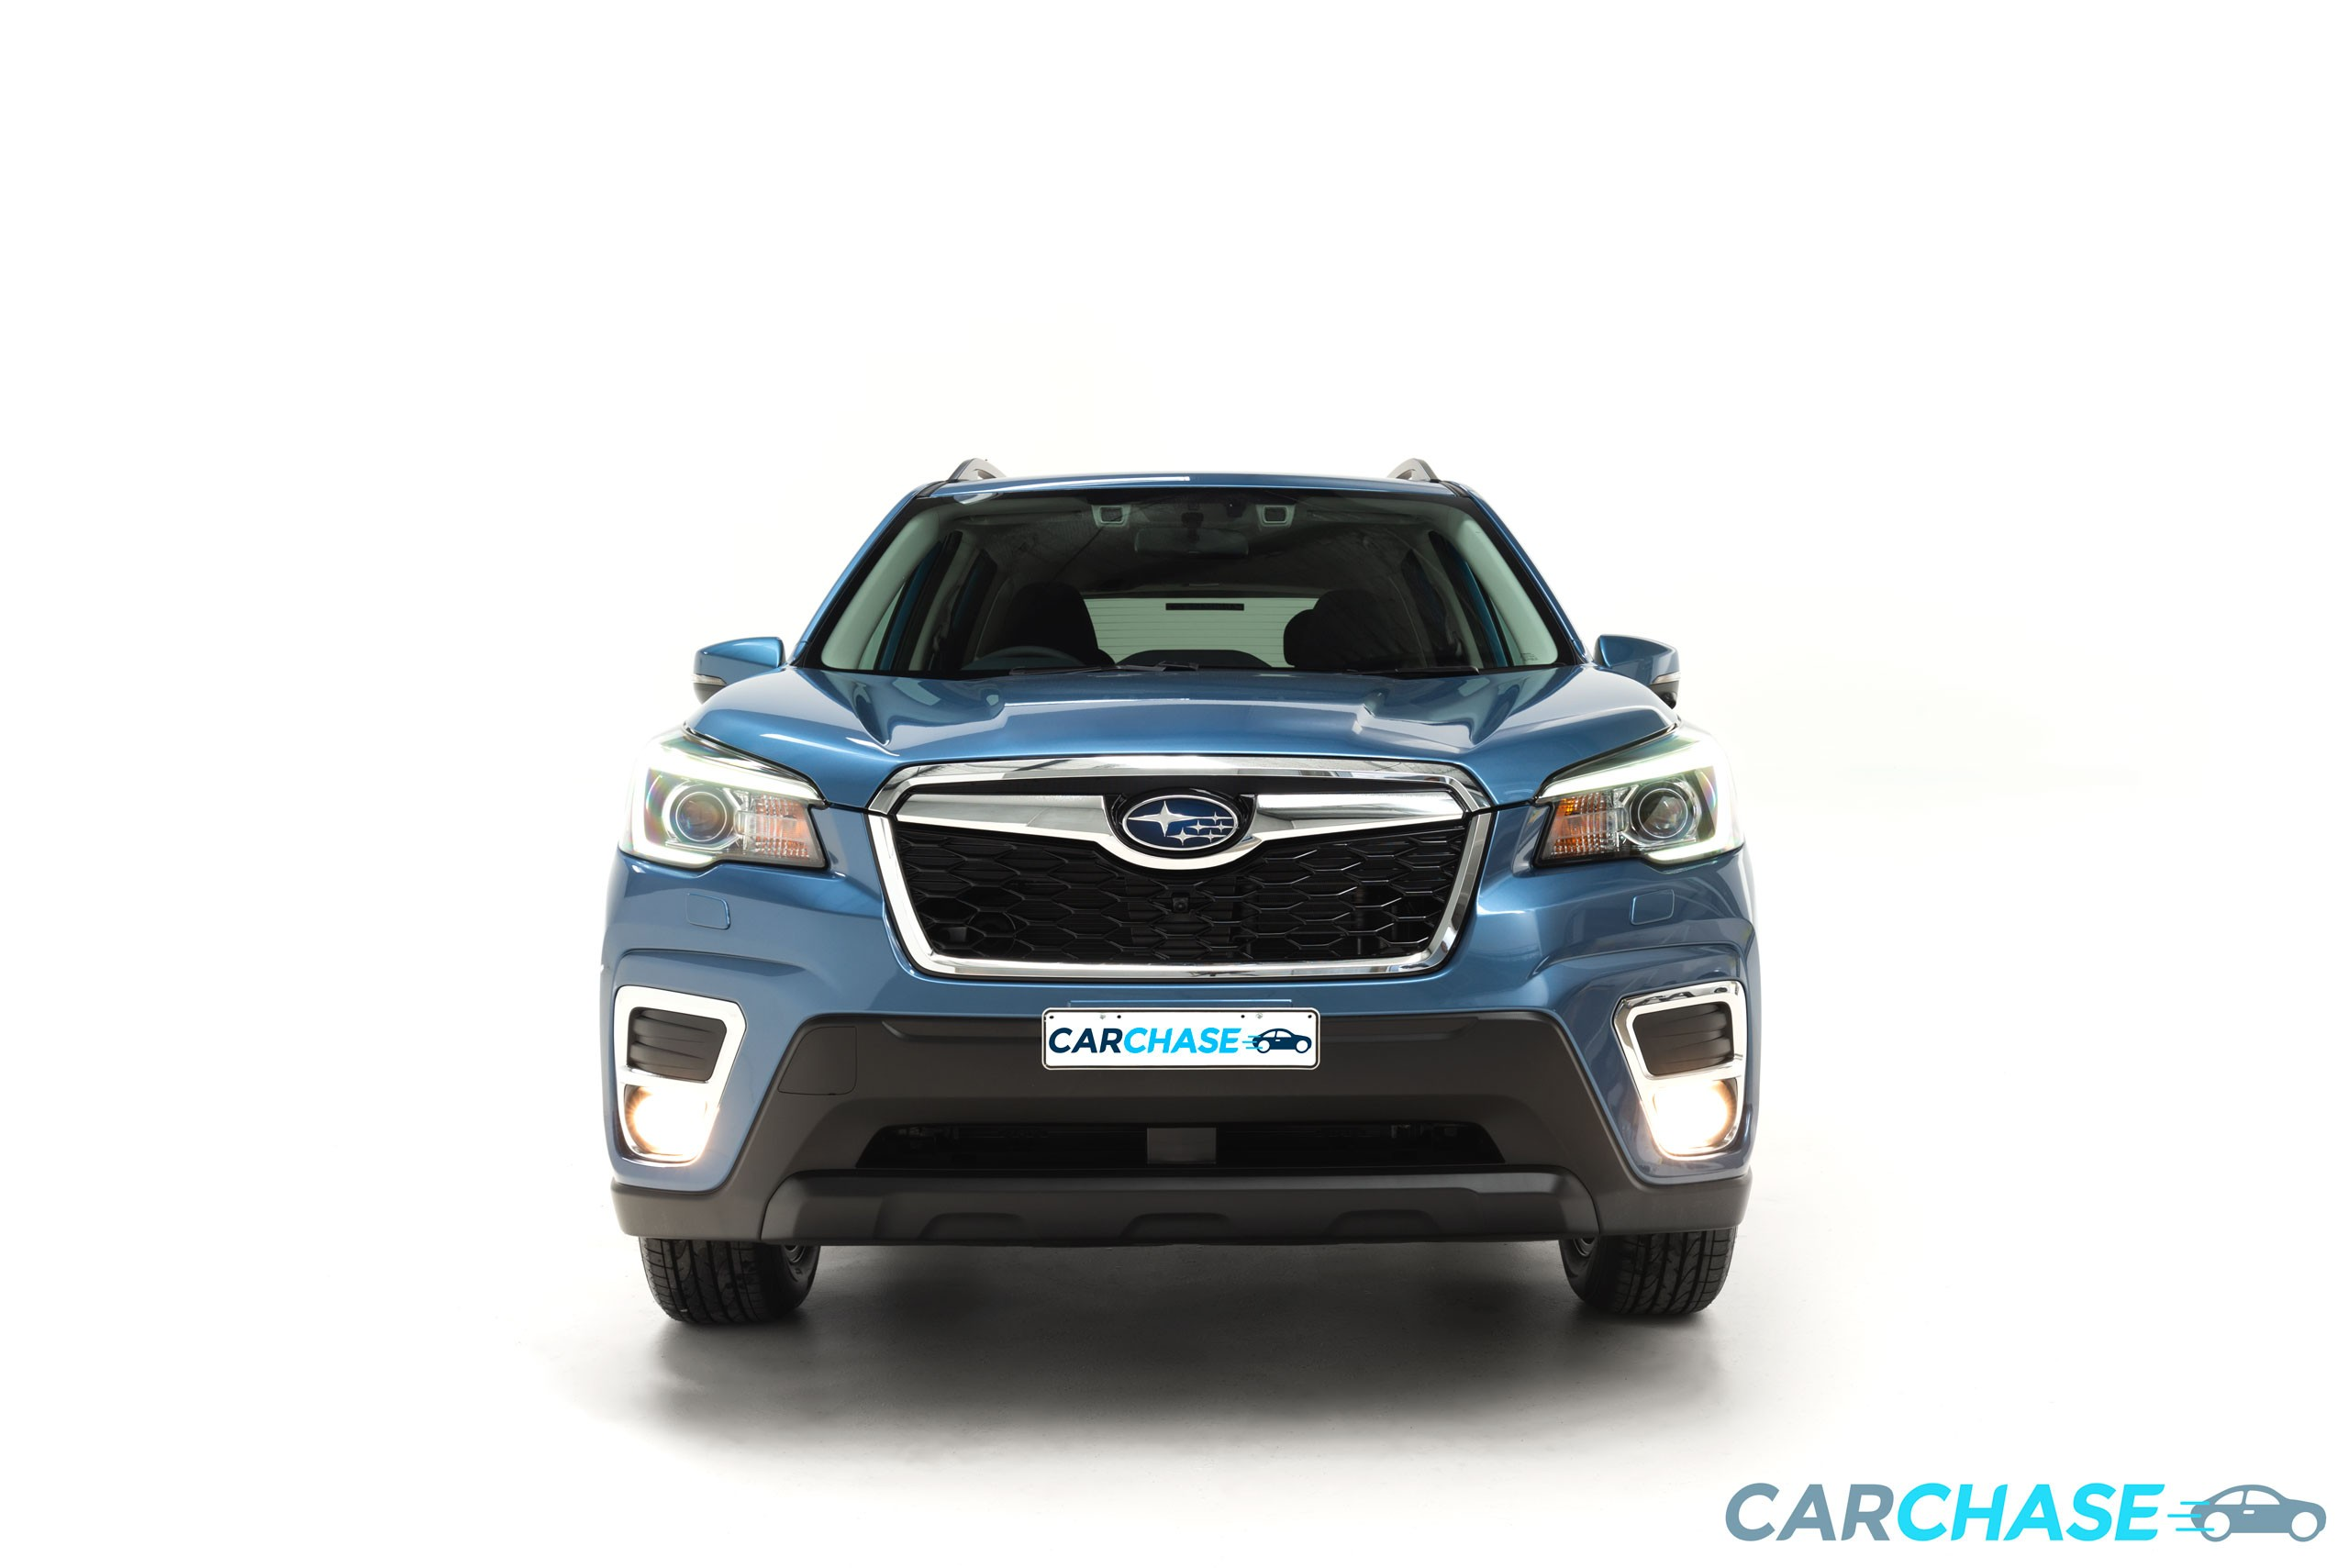 Image of front profile of 2019 Subaru Forester 2.5i-Premium